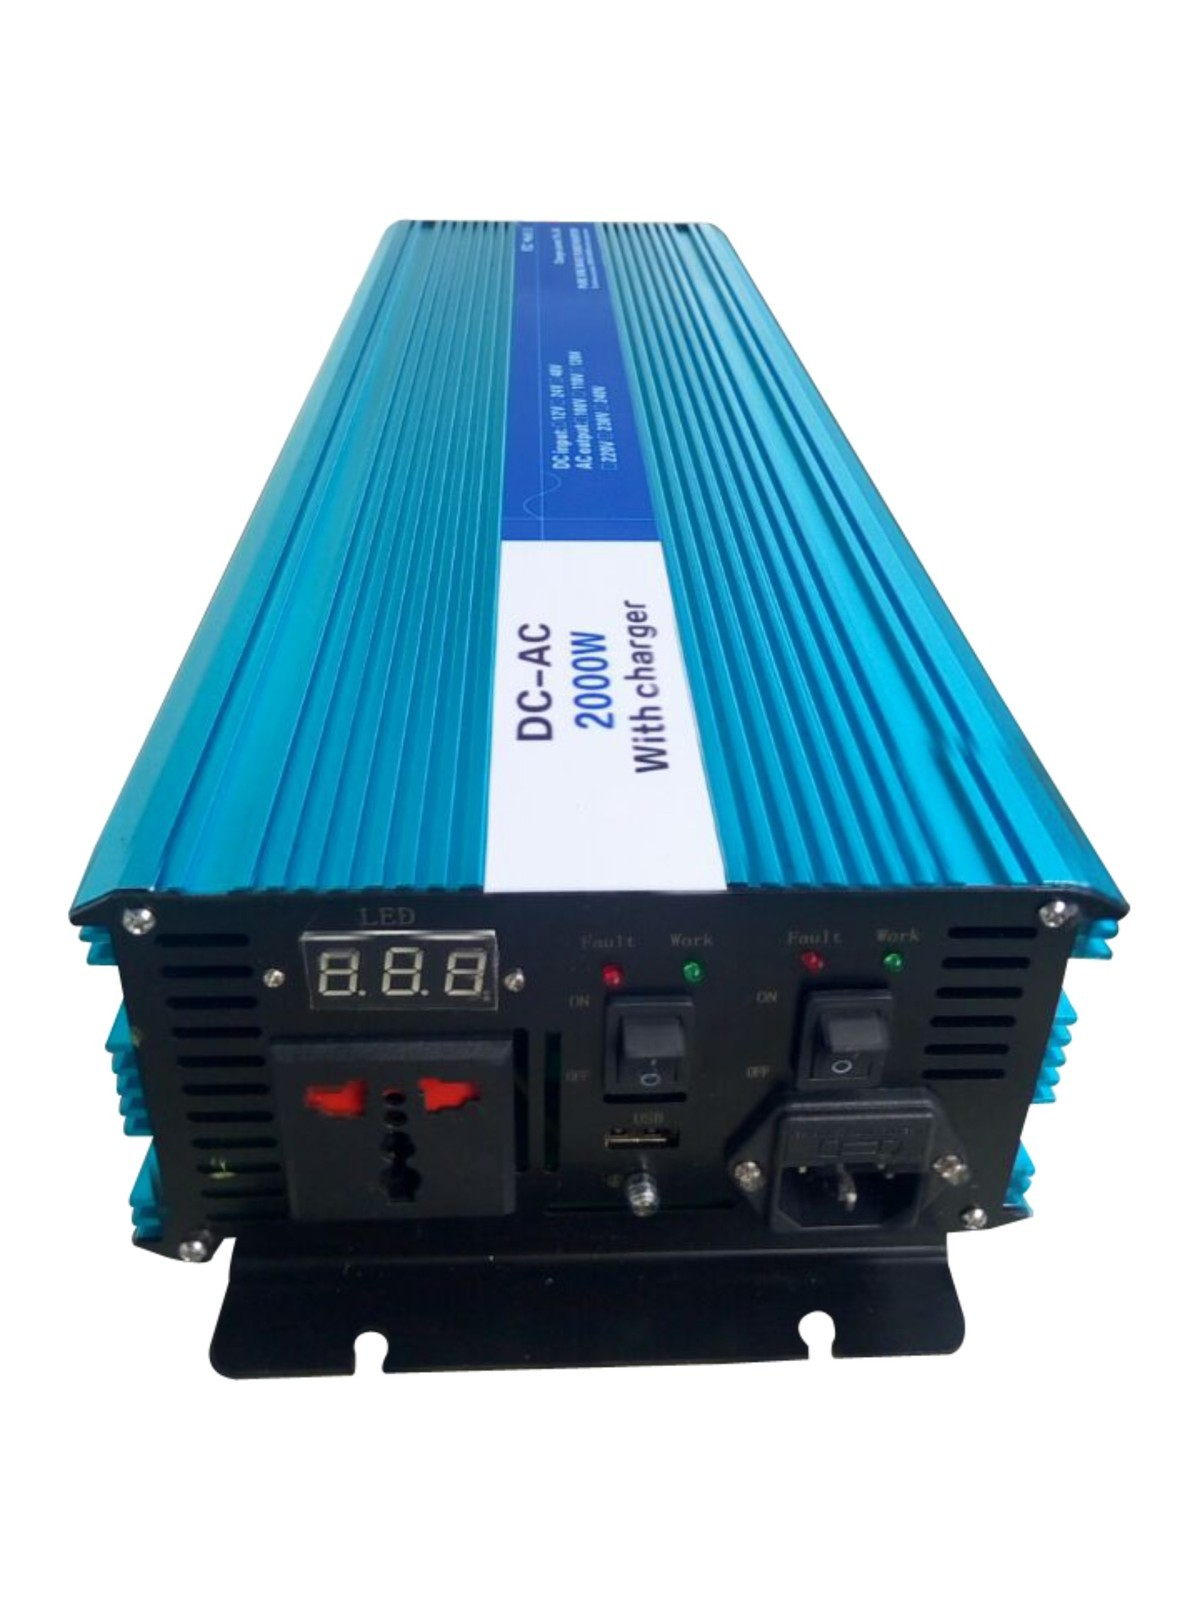 цена на Full Power 2000W Pure Sine Wave Inverter,DC 12V/24V/48V To AC 110V/220V,off Grid Solar Inverter With Battery Charger And UPS